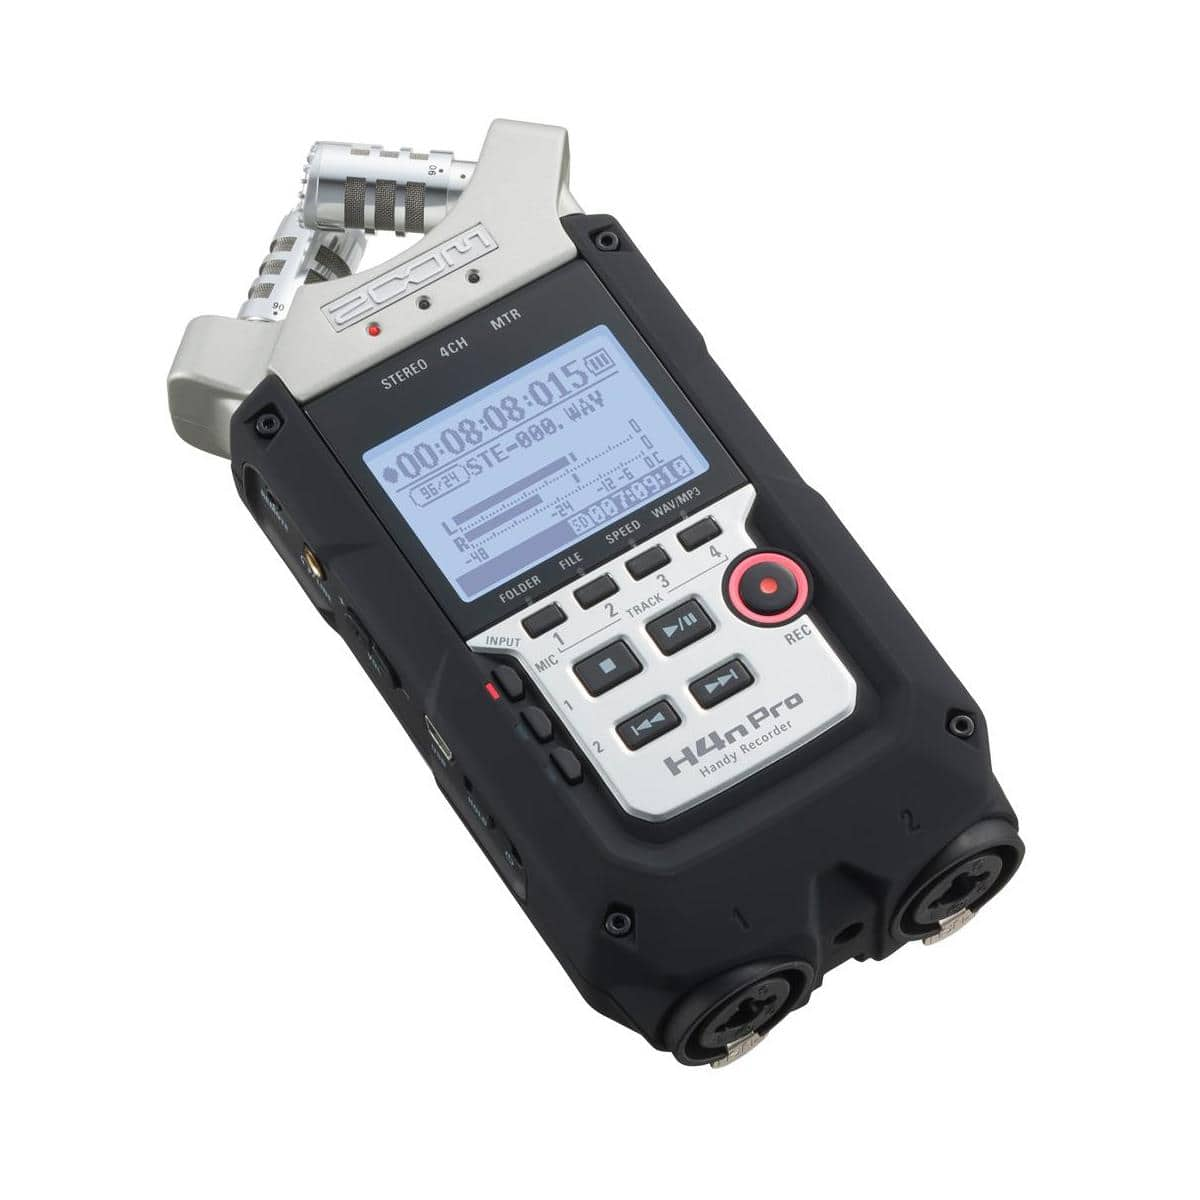 Zoom H4n Pro Porrtable 4-Track Audio Recorder $169 + free shipping